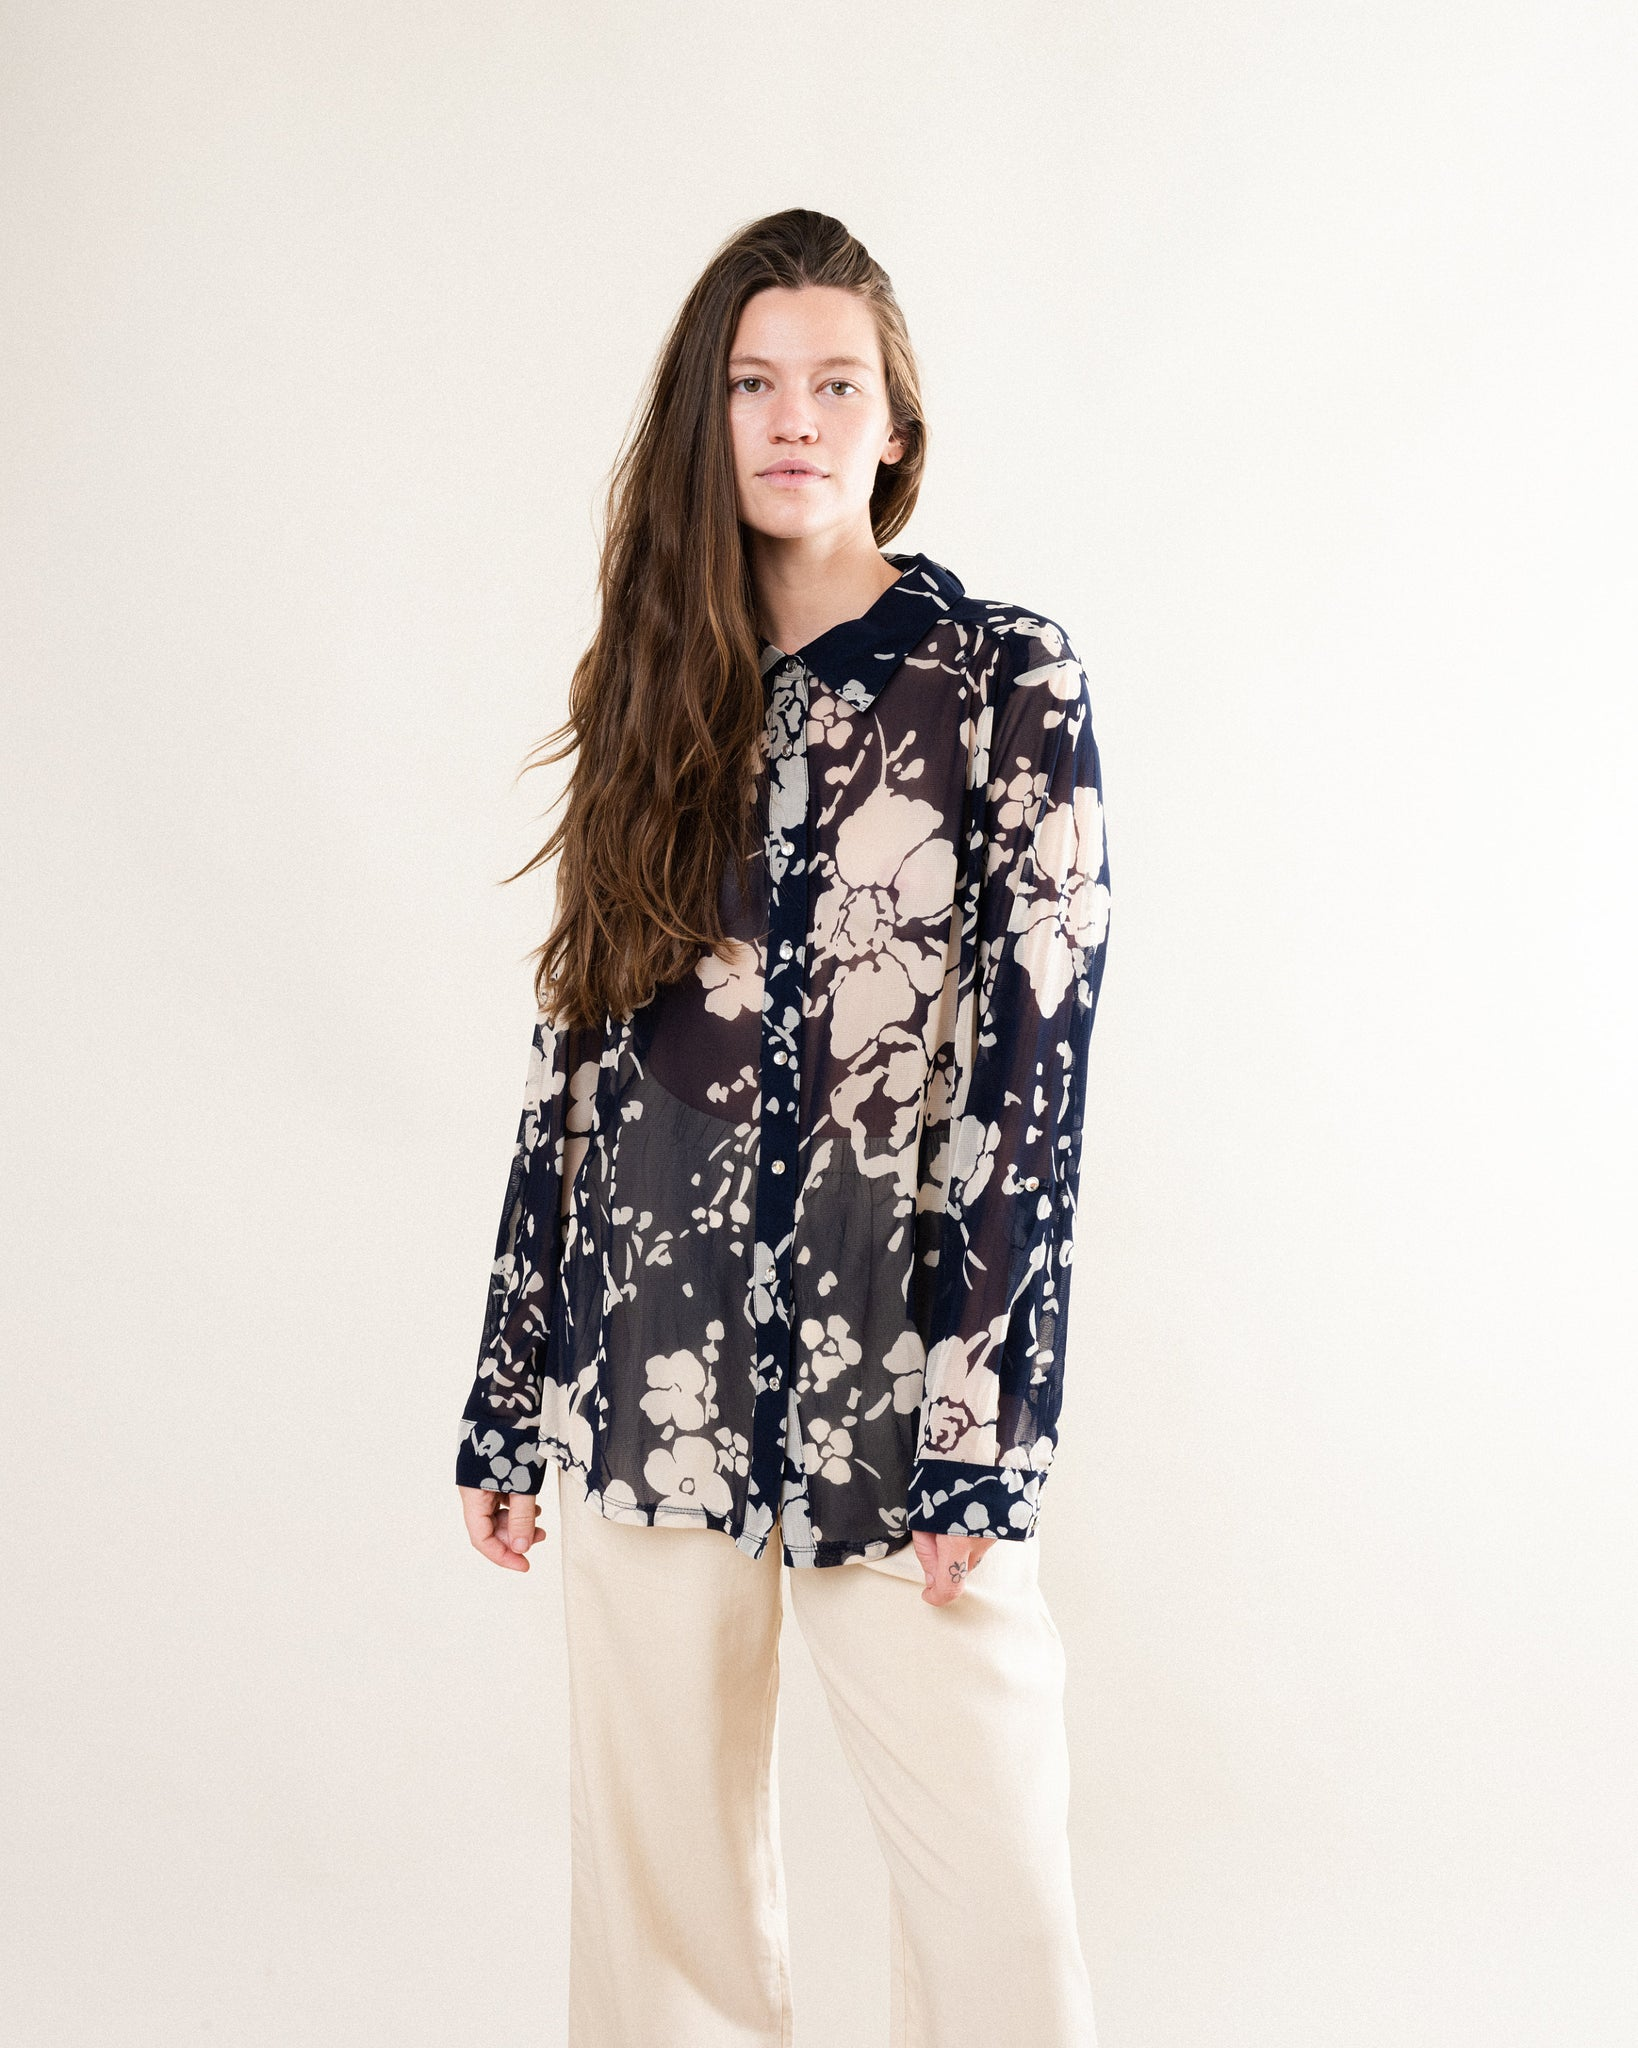 Vintage Navy + Cream Floral Sheer Blouse / S/M